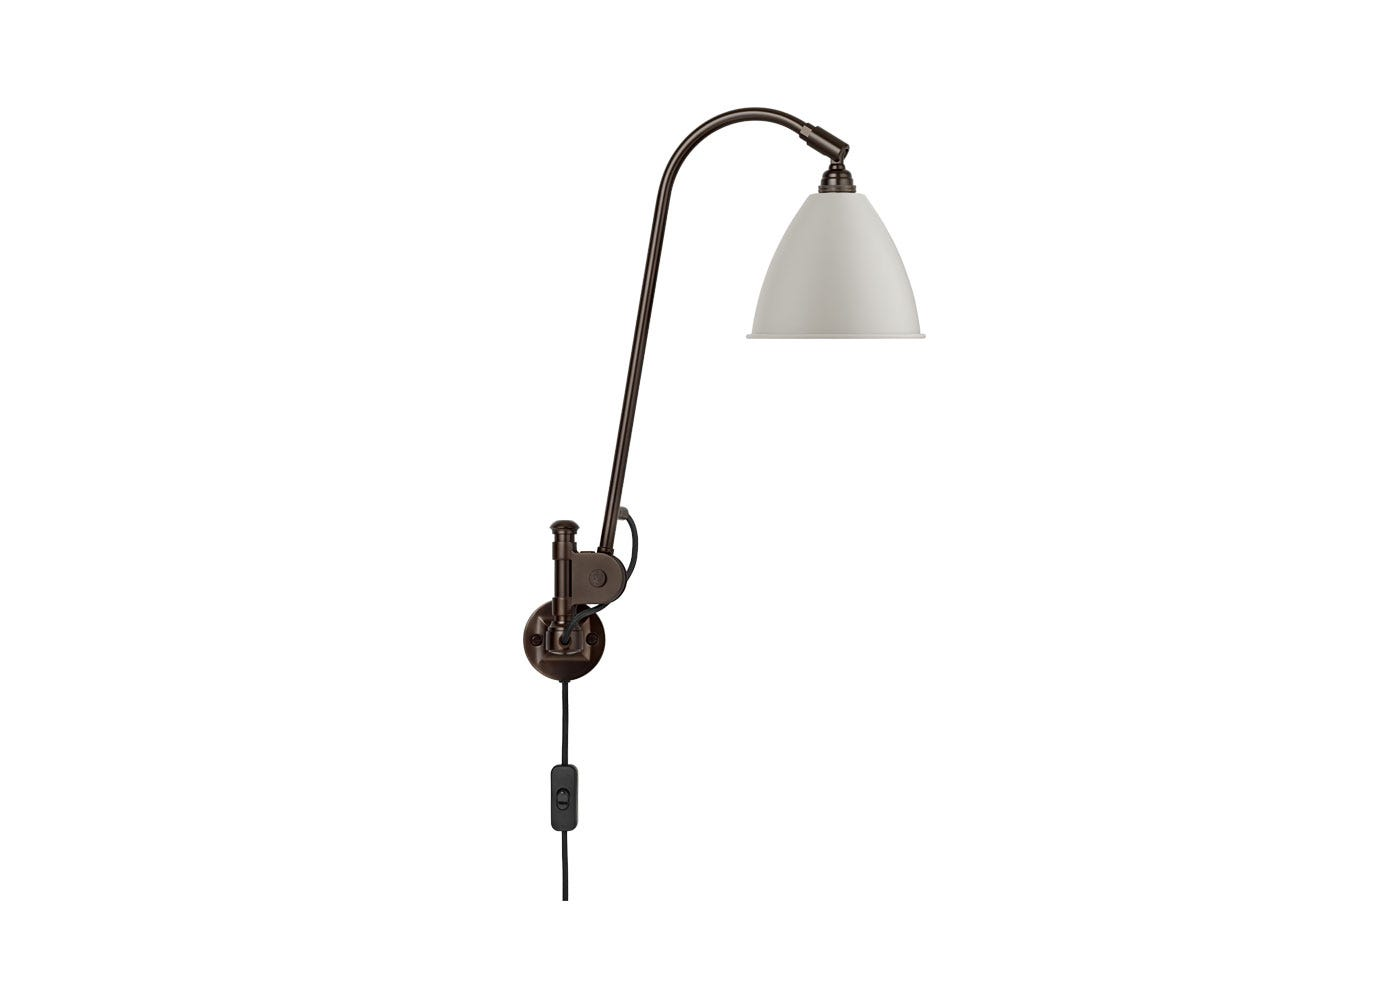 As Shown: BL6 Wall Light Black Base Base with White Shade